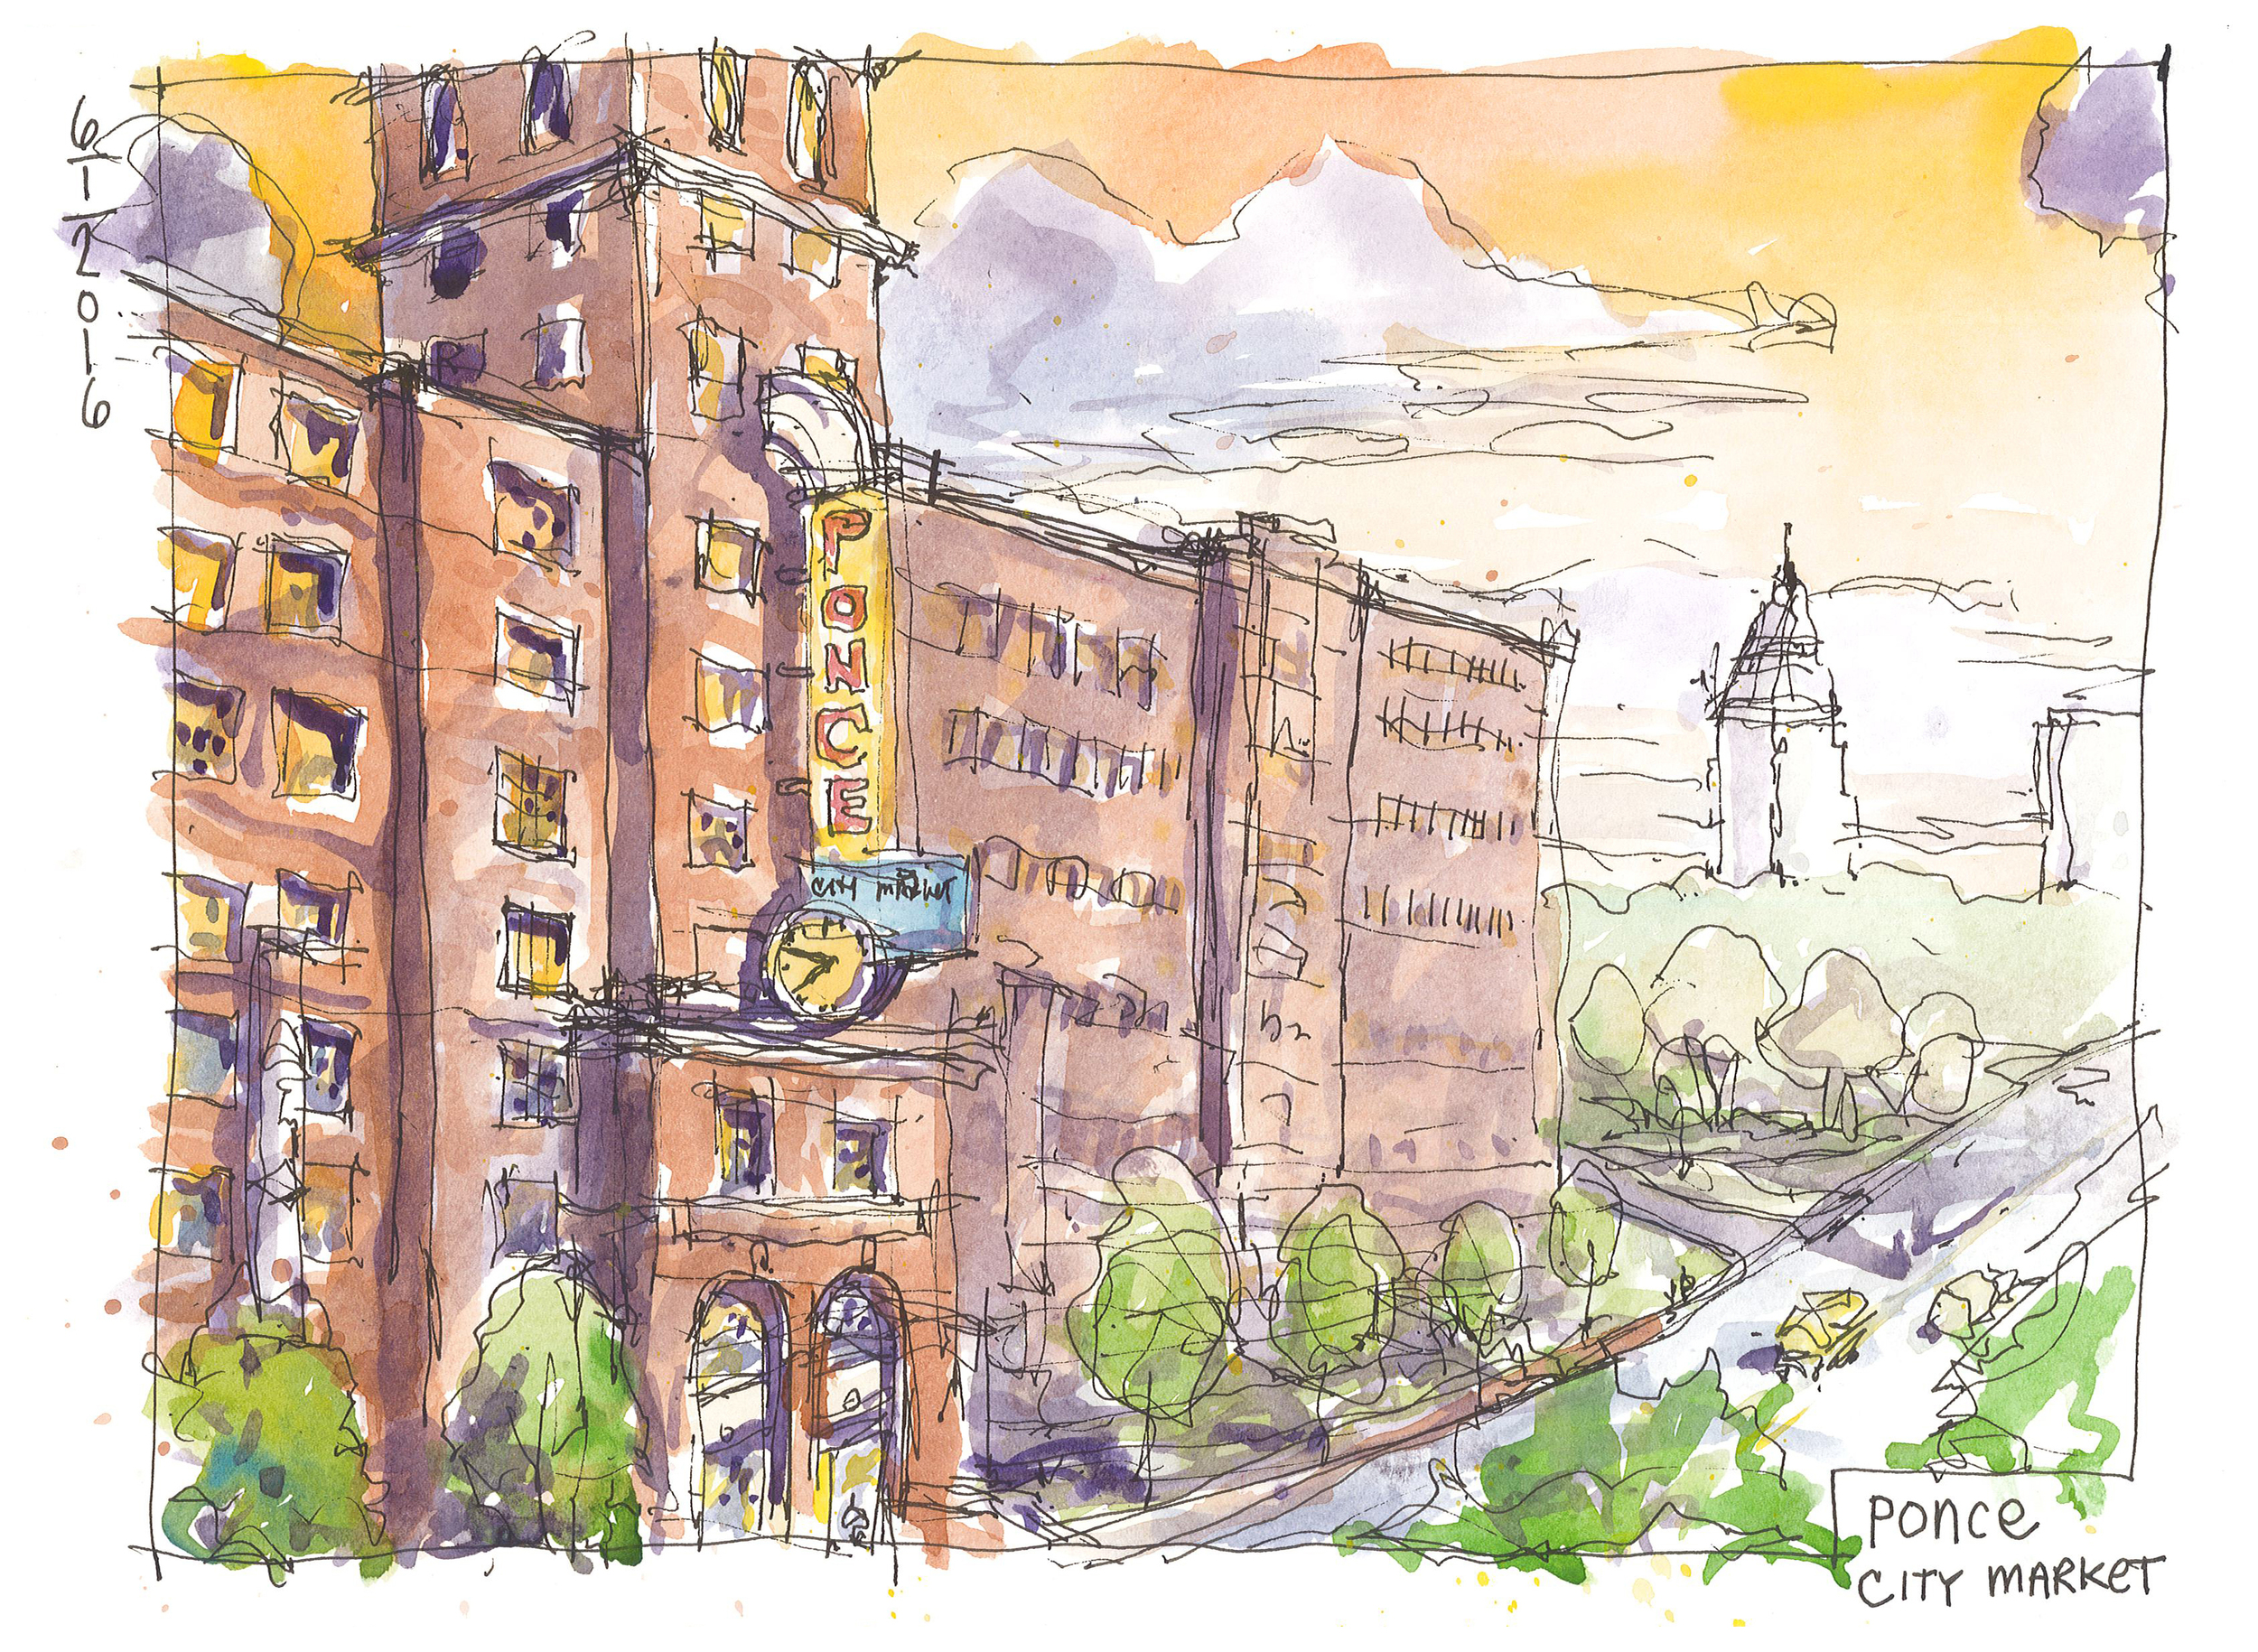 ATL early June sketchin'.... #PonceCityMarket